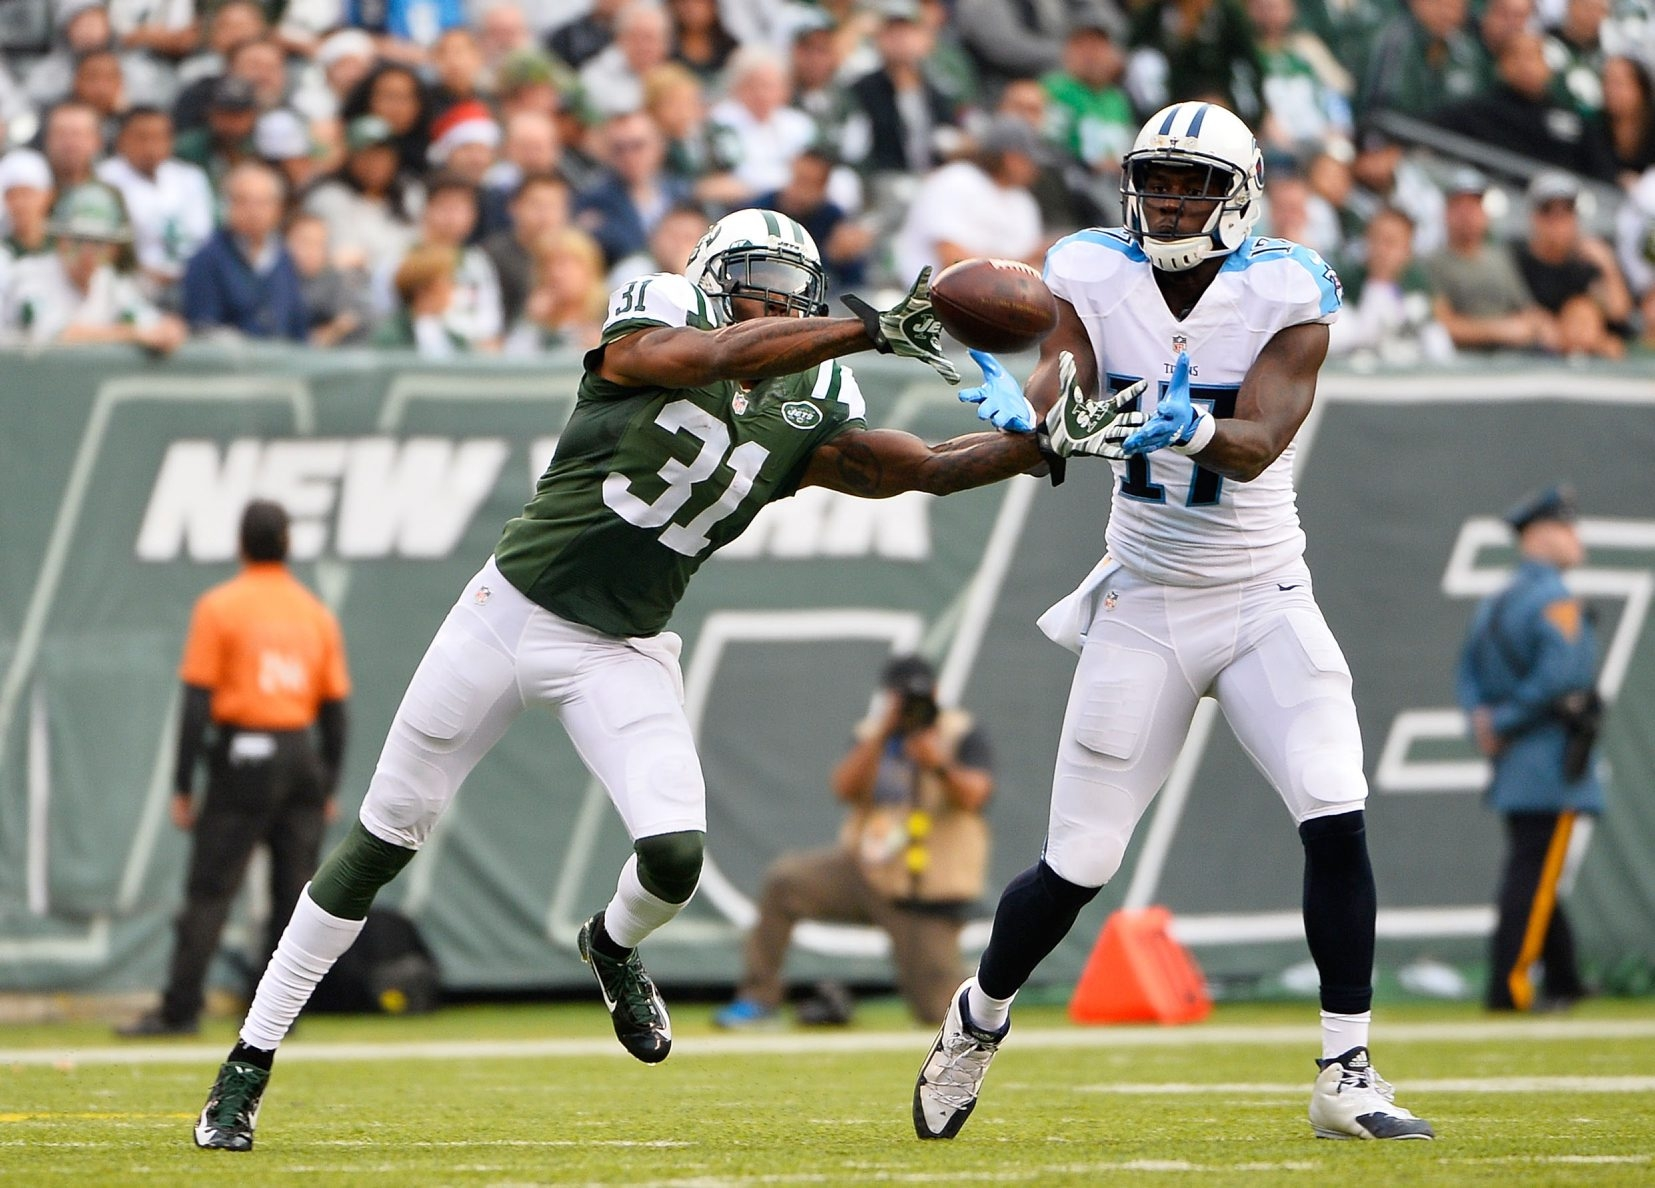 Antonio Cromartie (31) of the New York Jets, shown breaking up a pass by the  Tennessee Titans on Dec. 13, could add depth to the lineup of the Buffalo Bills.